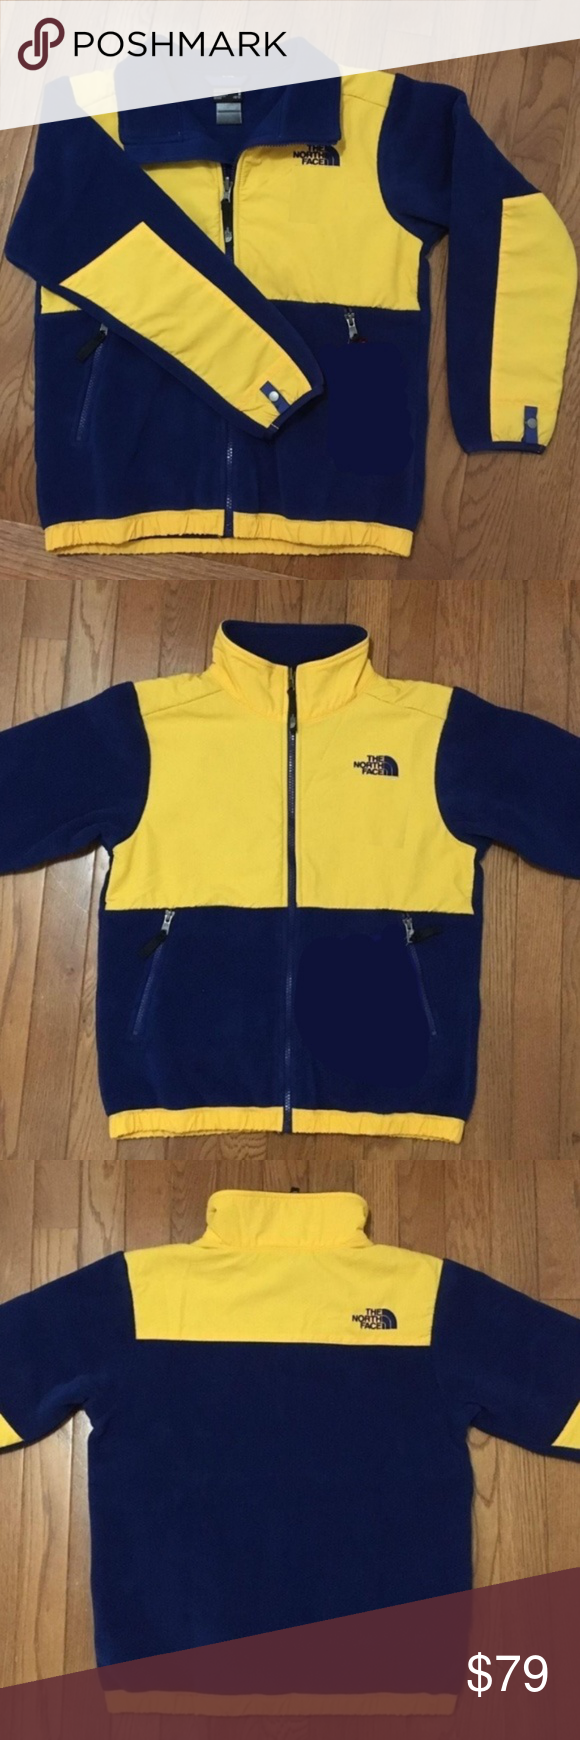 I Just Added This Listing On Poshmark Nwt Navy Blue Yellow North Face Denali Jacket Shopmycloset Poshmark Fas The North Face Jackets North Face Jacket [ 1740 x 580 Pixel ]